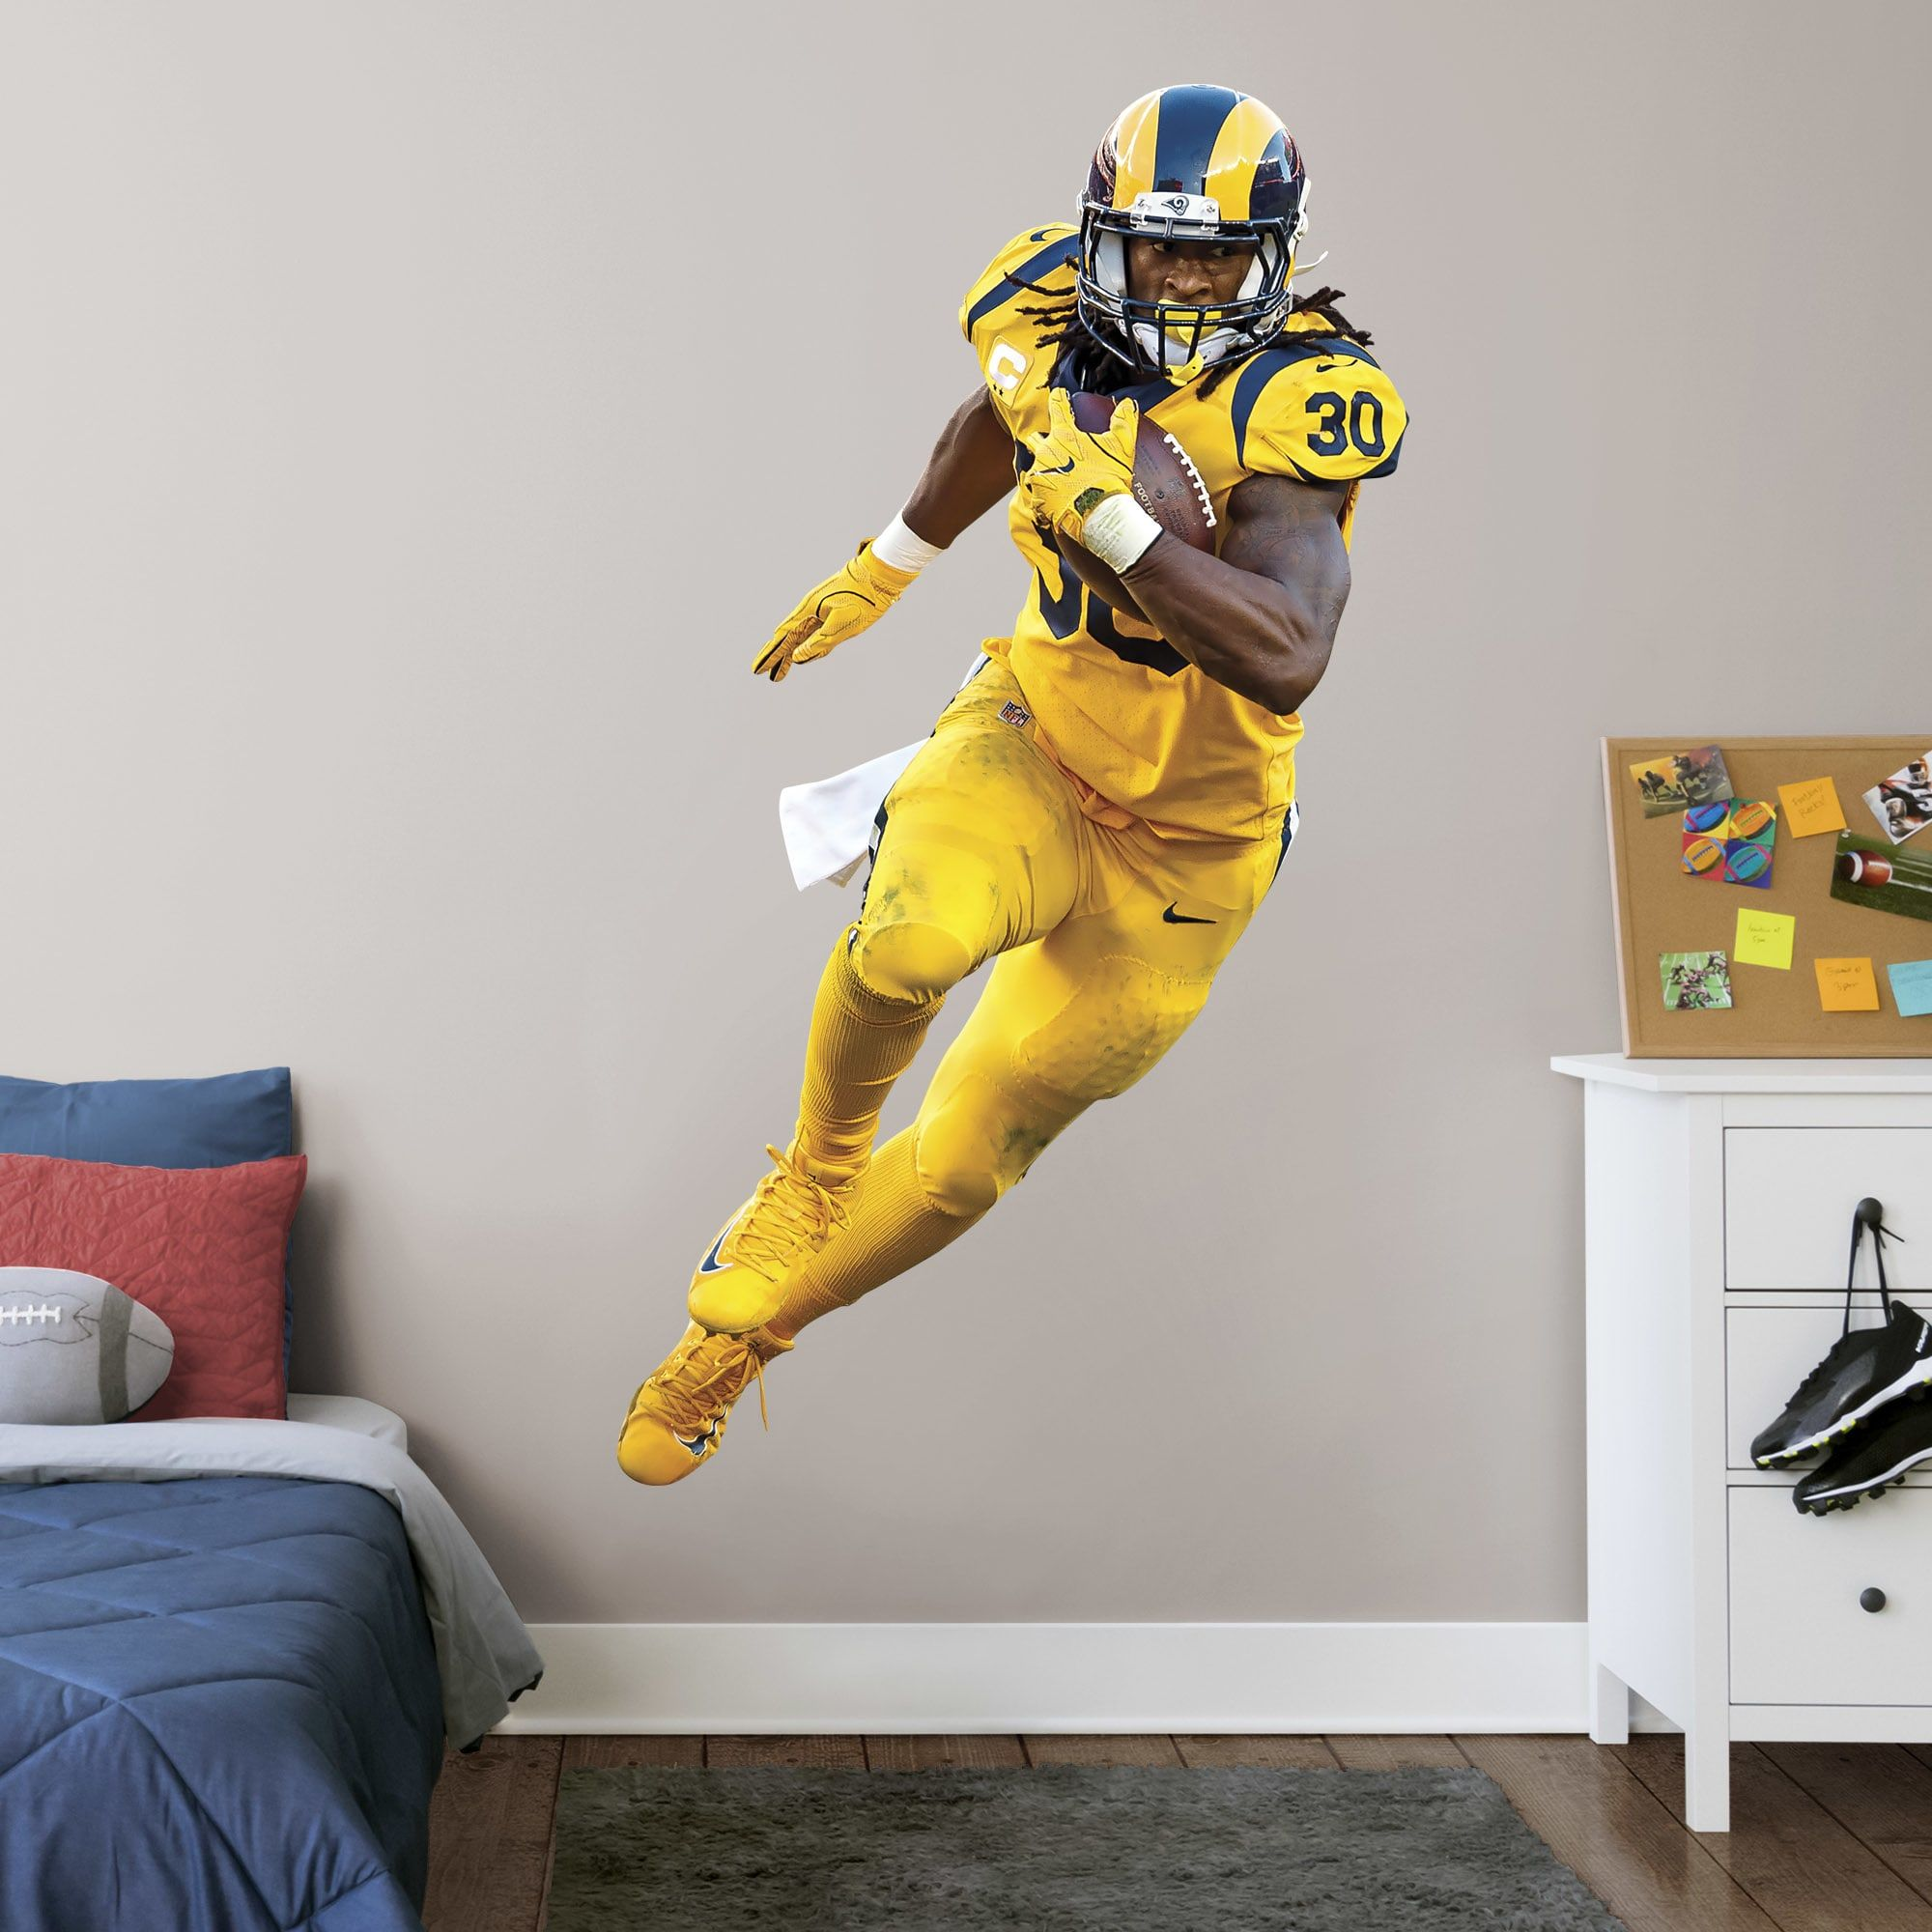 Todd Gurley Life Size Officially Licensed Nfl Removable Wall Decal Removable Wall Decals Removable Wall Todd Gurley